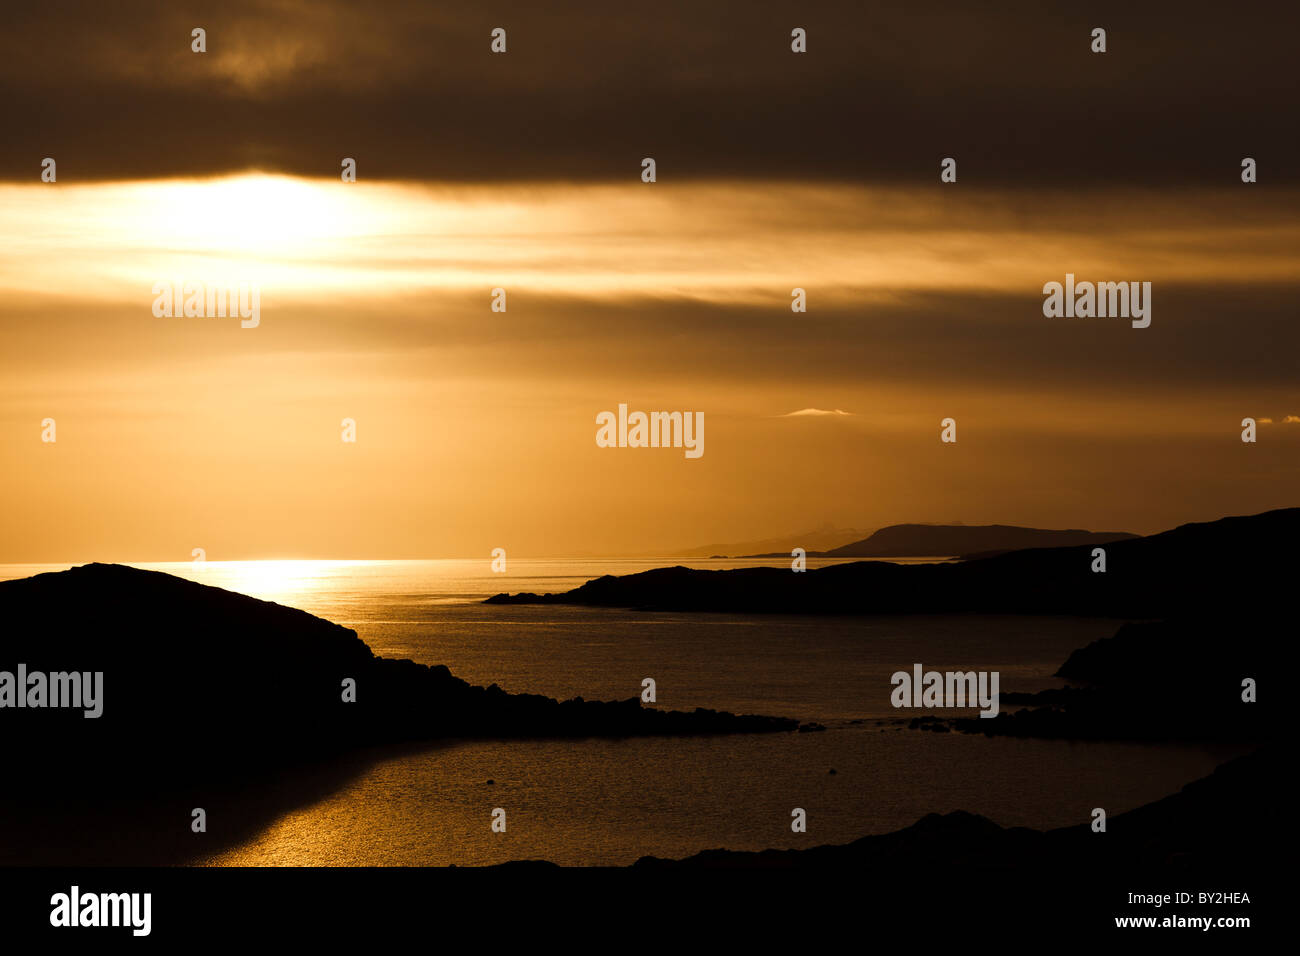 Sun setting over the Bays area of south Harris, Western Isles, Scotland - Stock Image